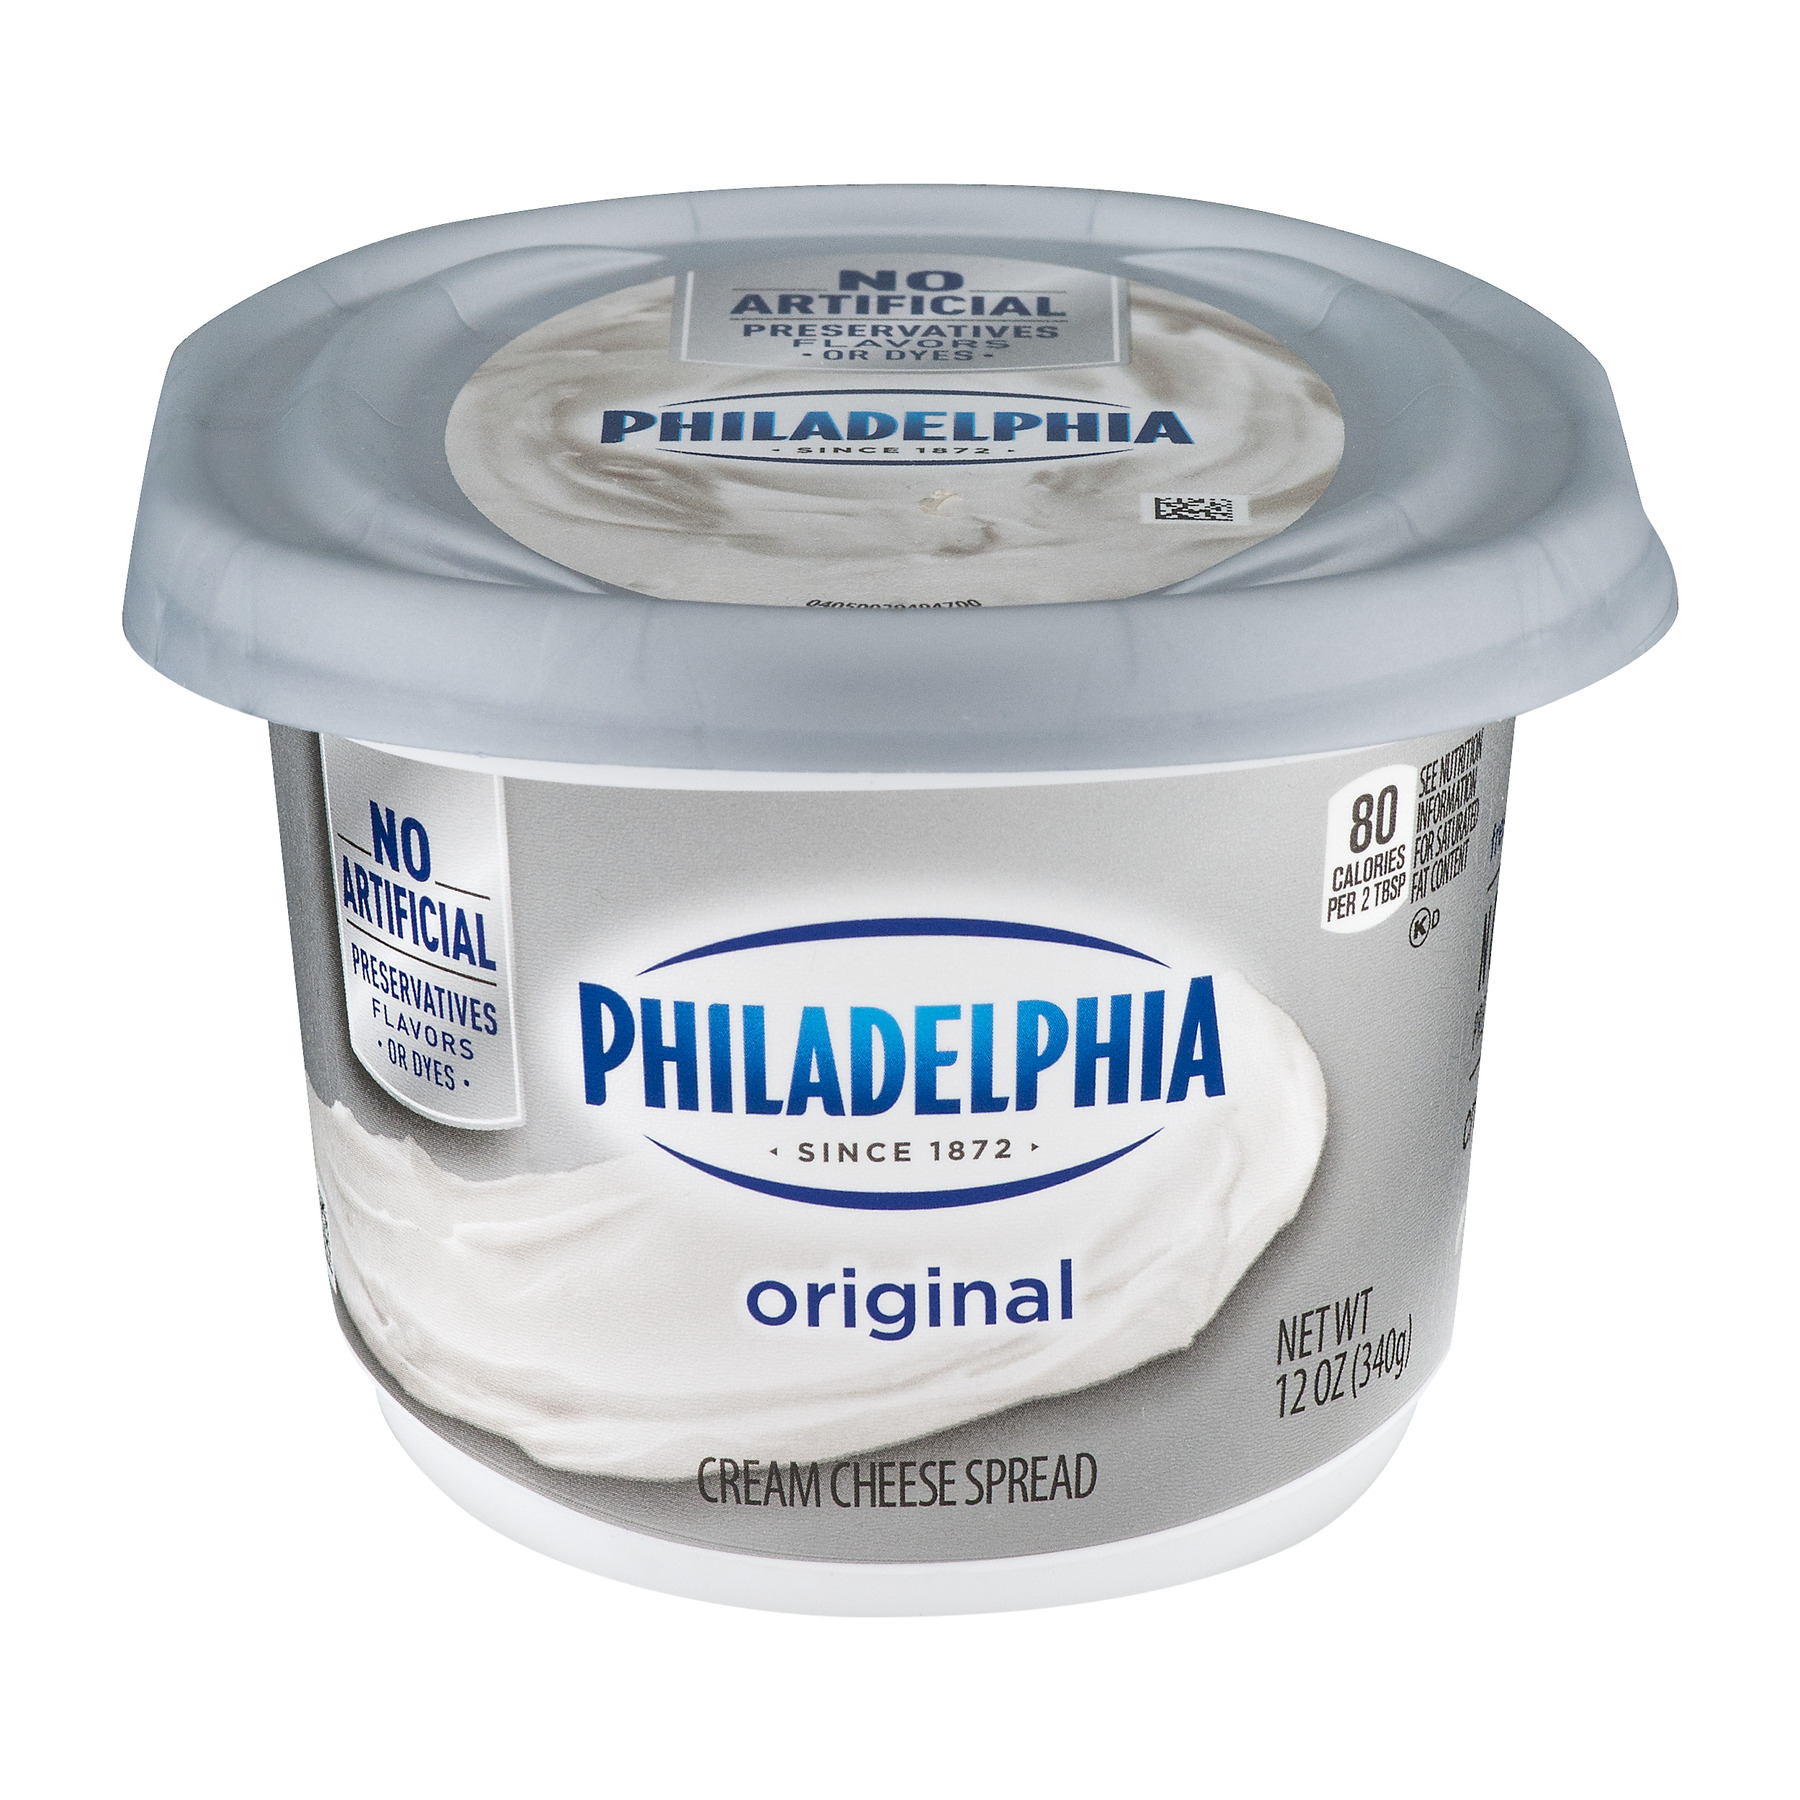 Philadelphia Original Cream Cheese Spread, 12 oz